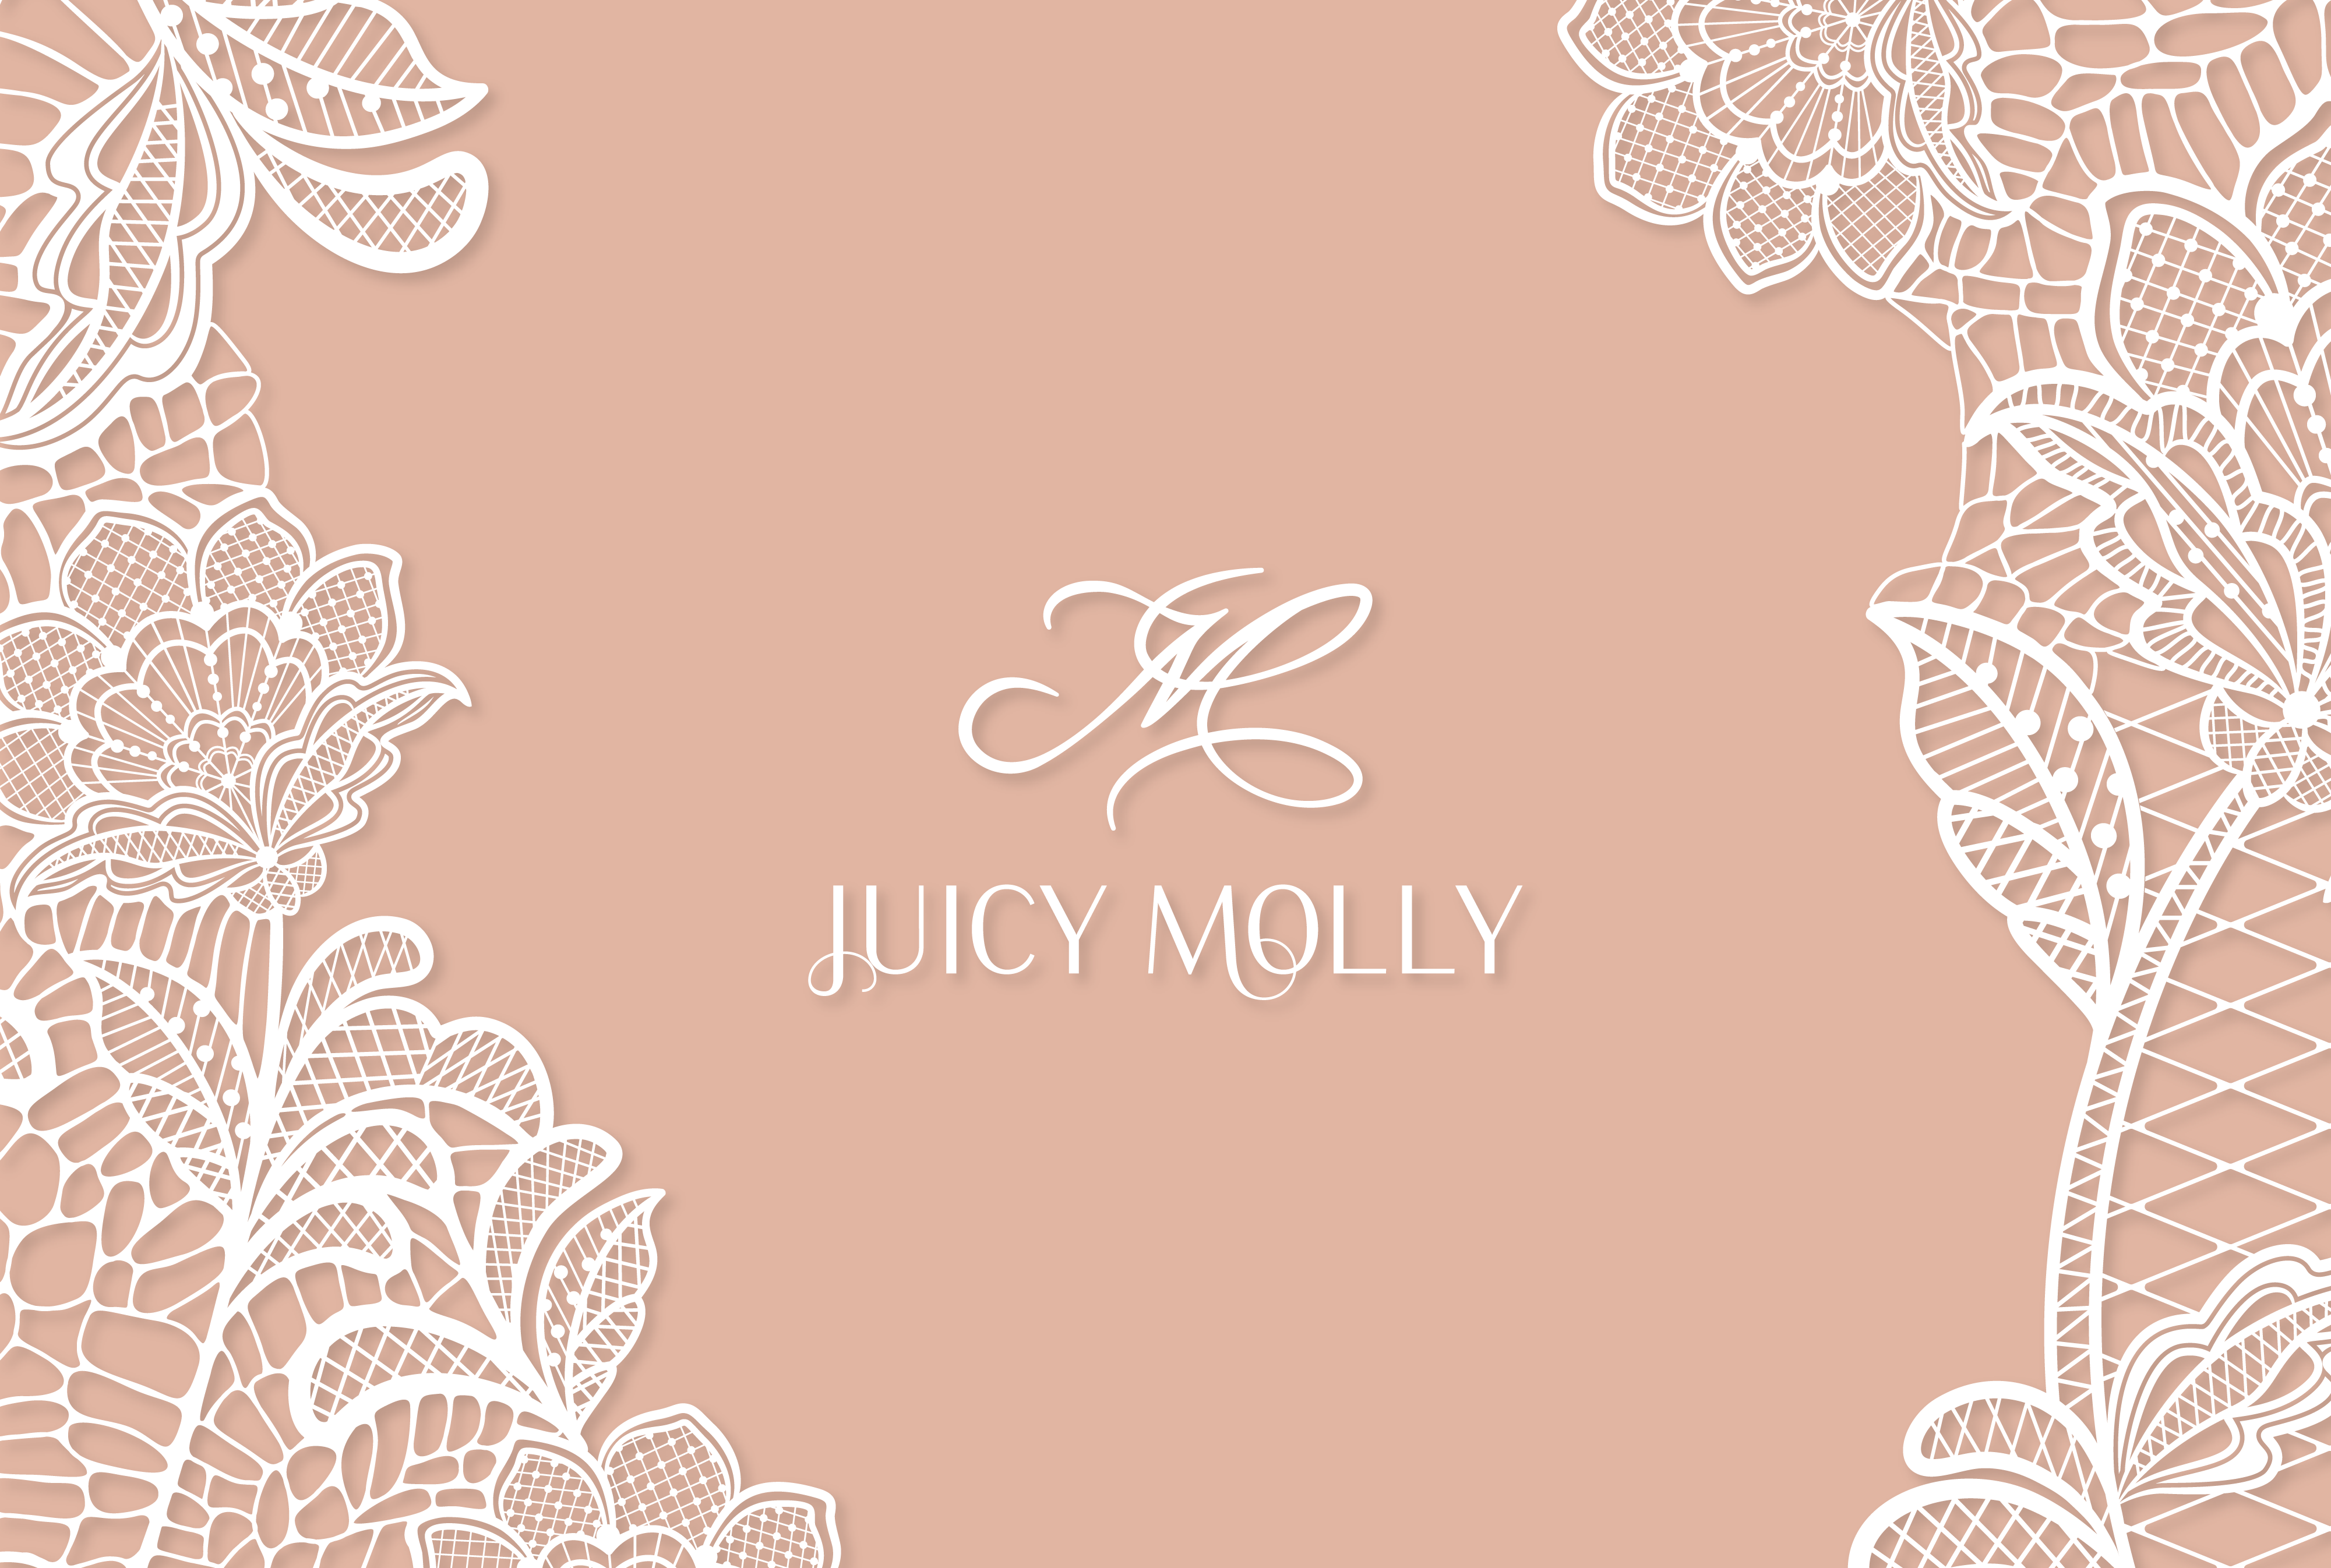 Juicy Molly